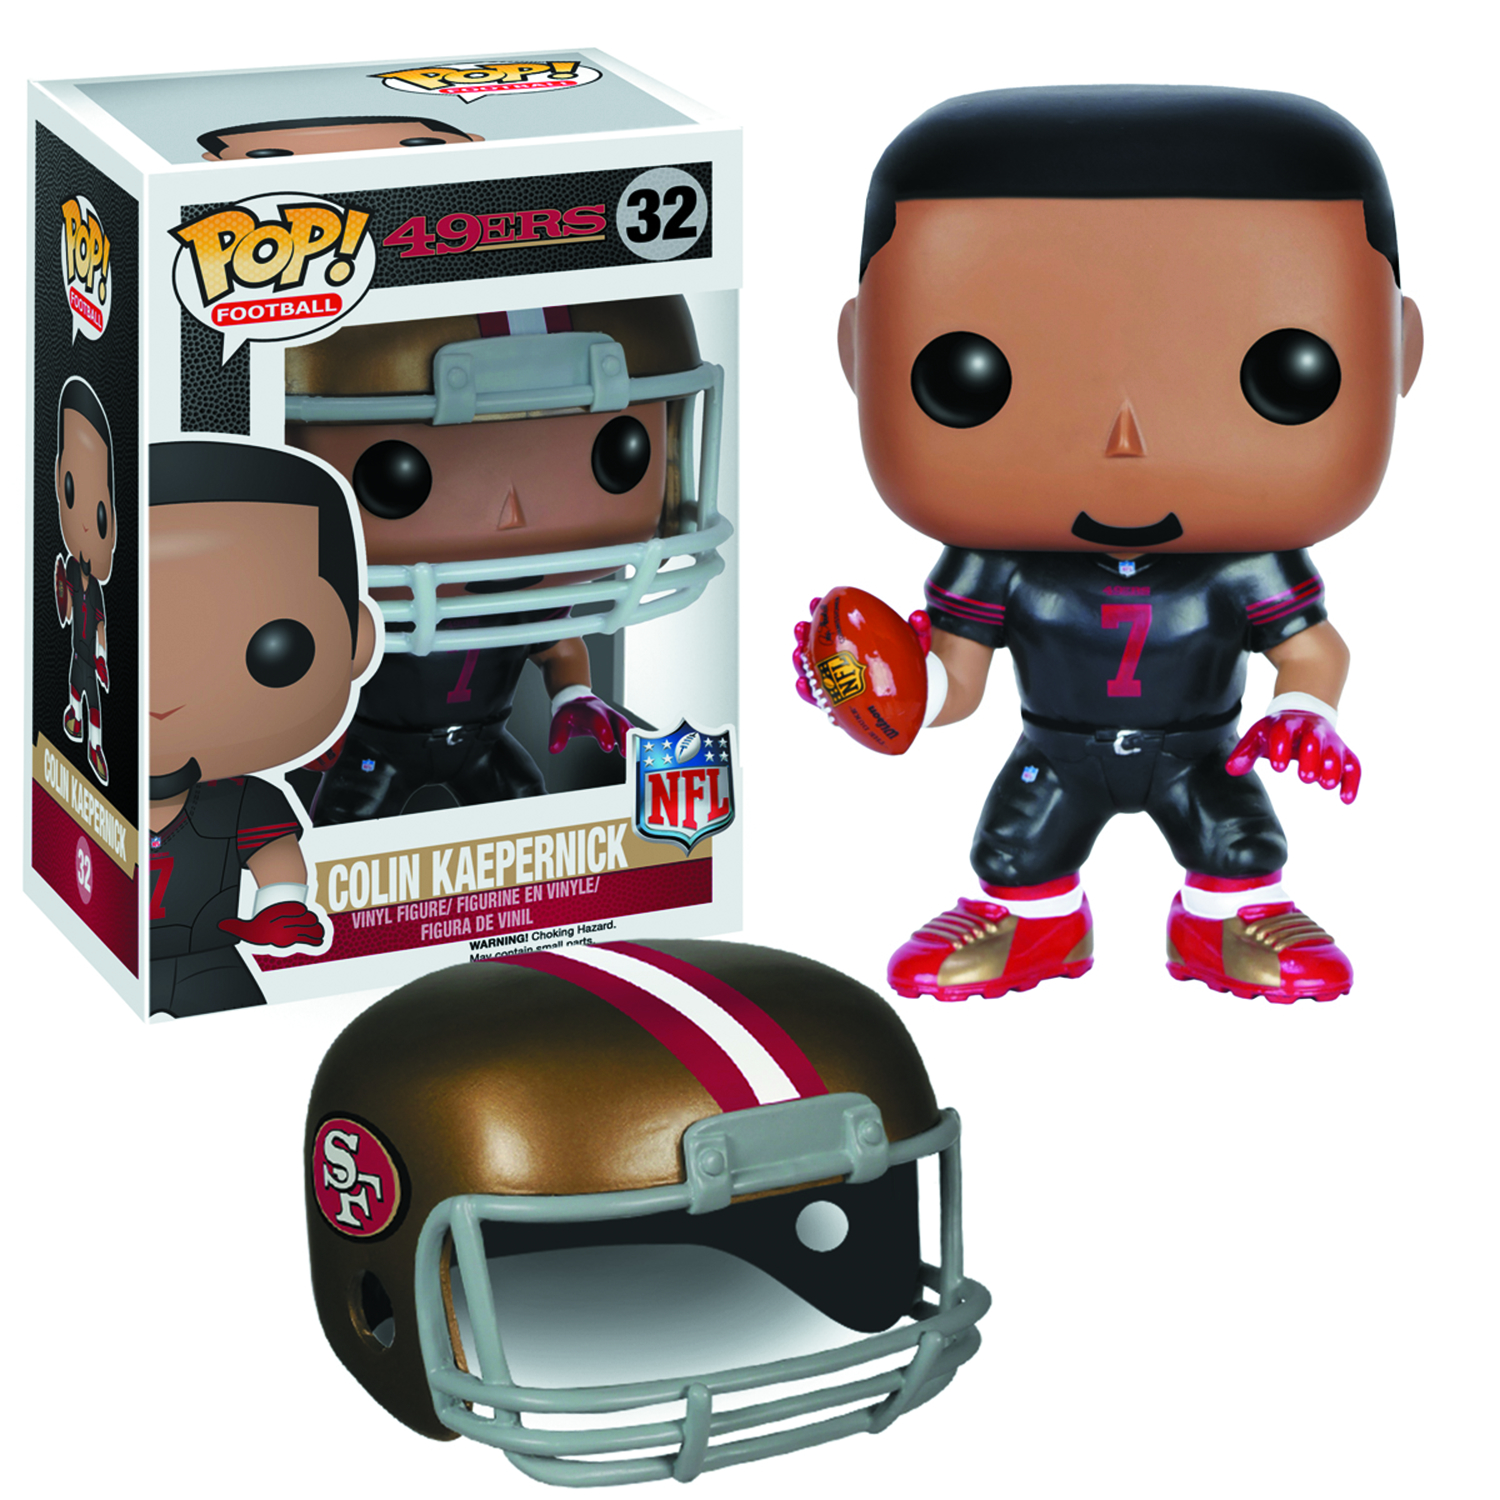 POP NFL COLIN KAEPERNICK VER 2 VINYL FIG